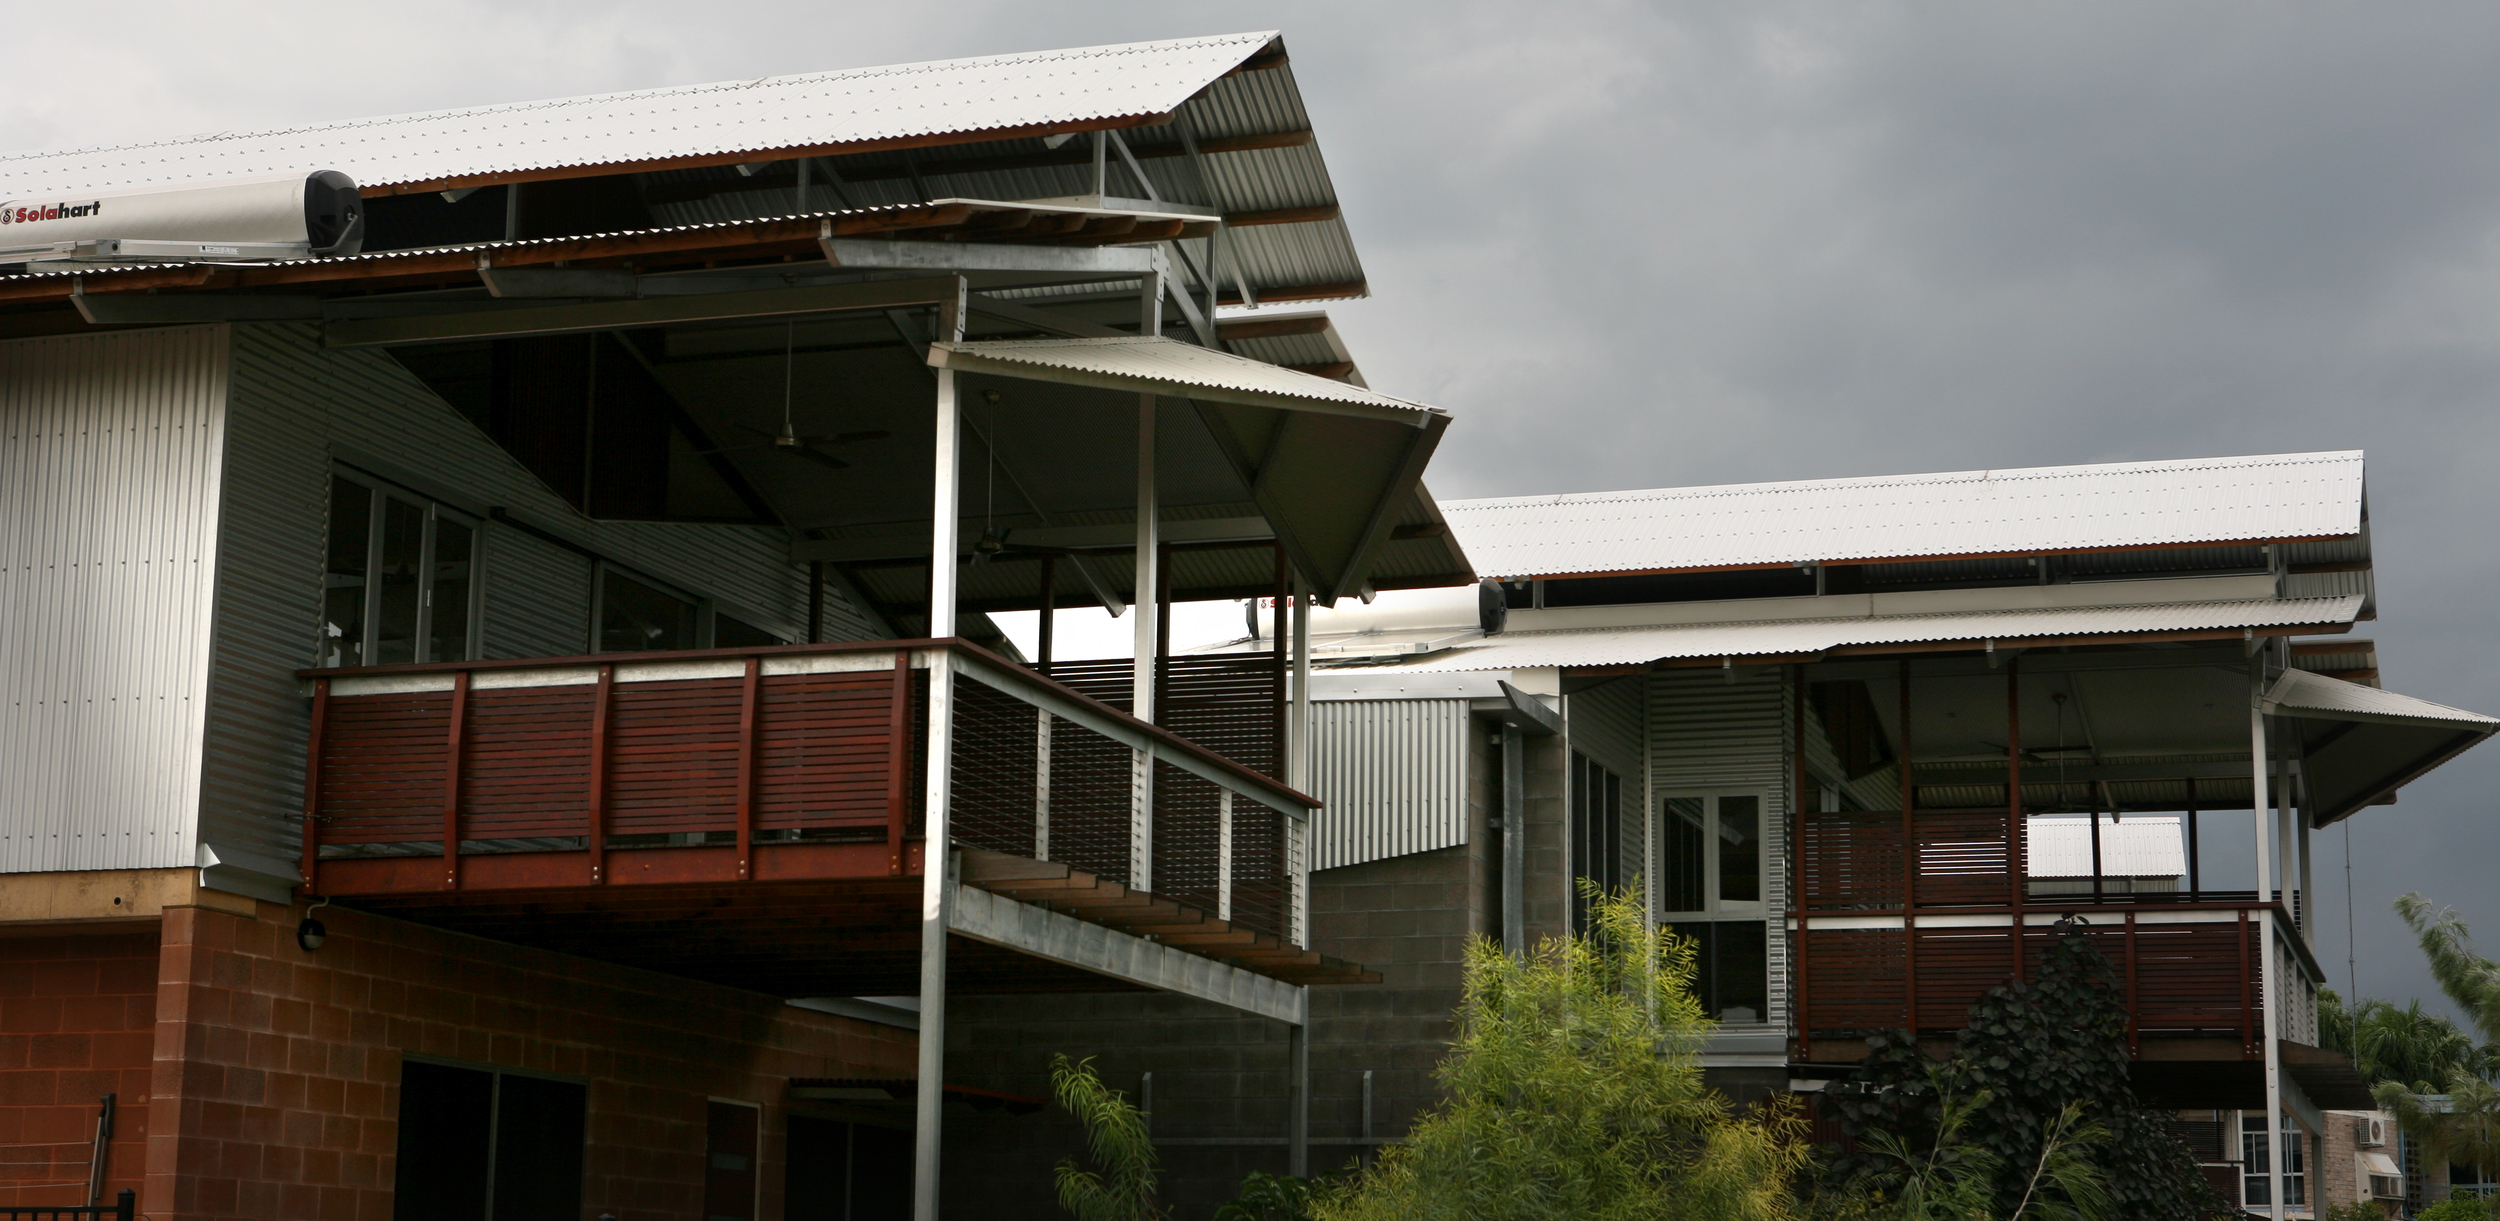 Arafura, Medium Density Housing  - Darwin, NT, 2009